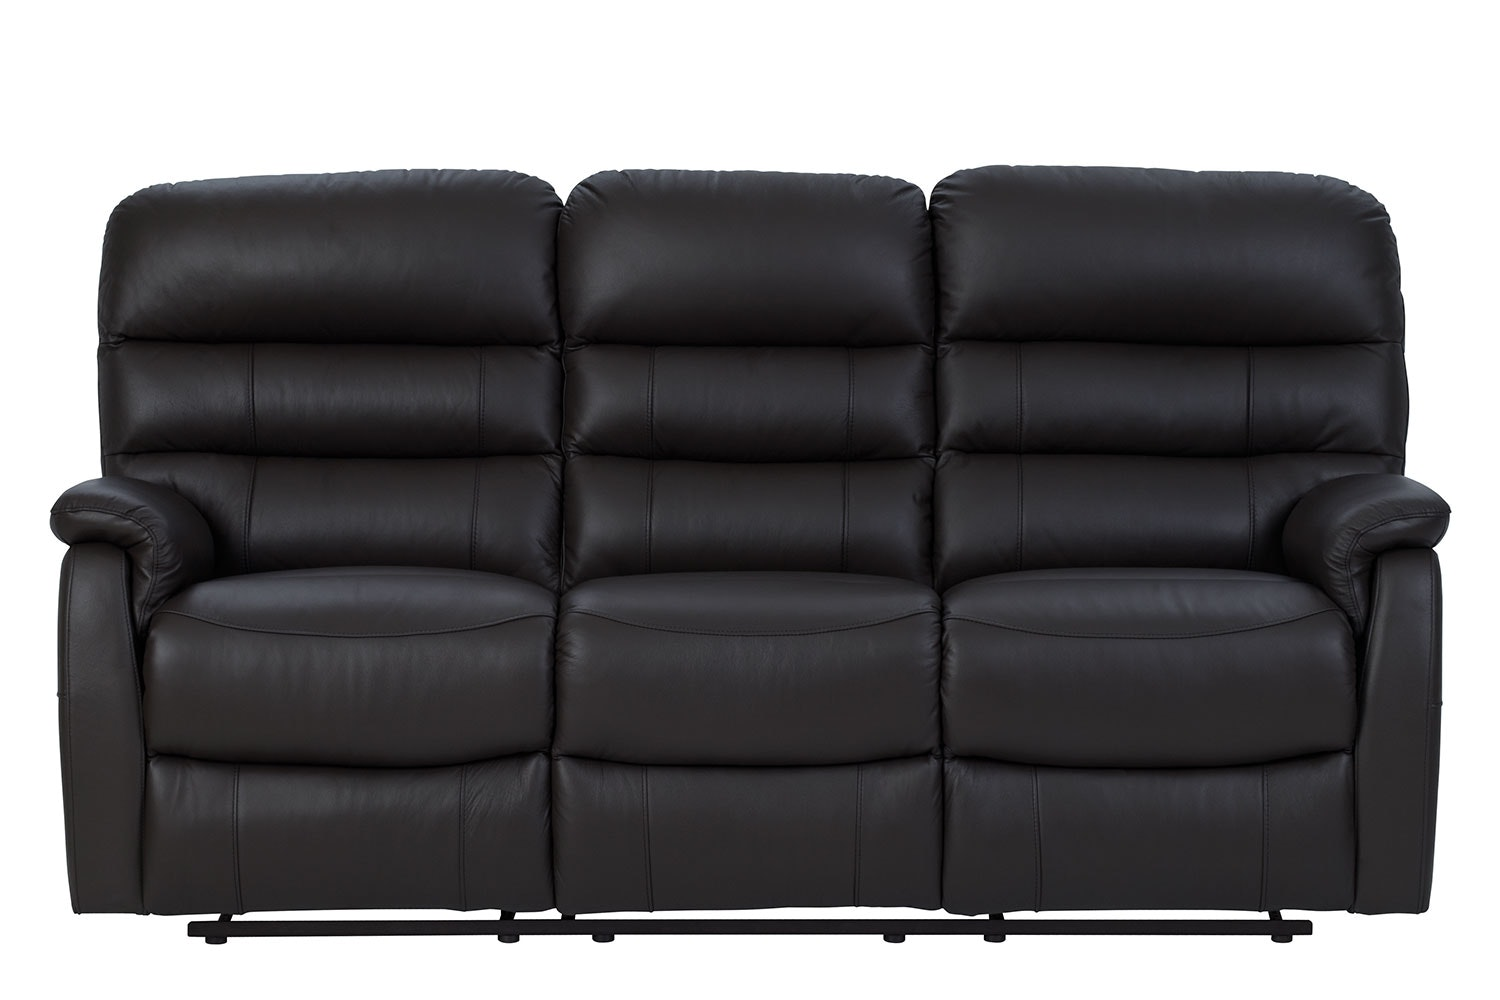 Luna 3 Seater Leather Recliner Sofa by Vivin  sc 1 st  Harvey Norman & Luna 3 Seater Leather Recliner Sofa by Vivin | Harvey Norman New ... islam-shia.org